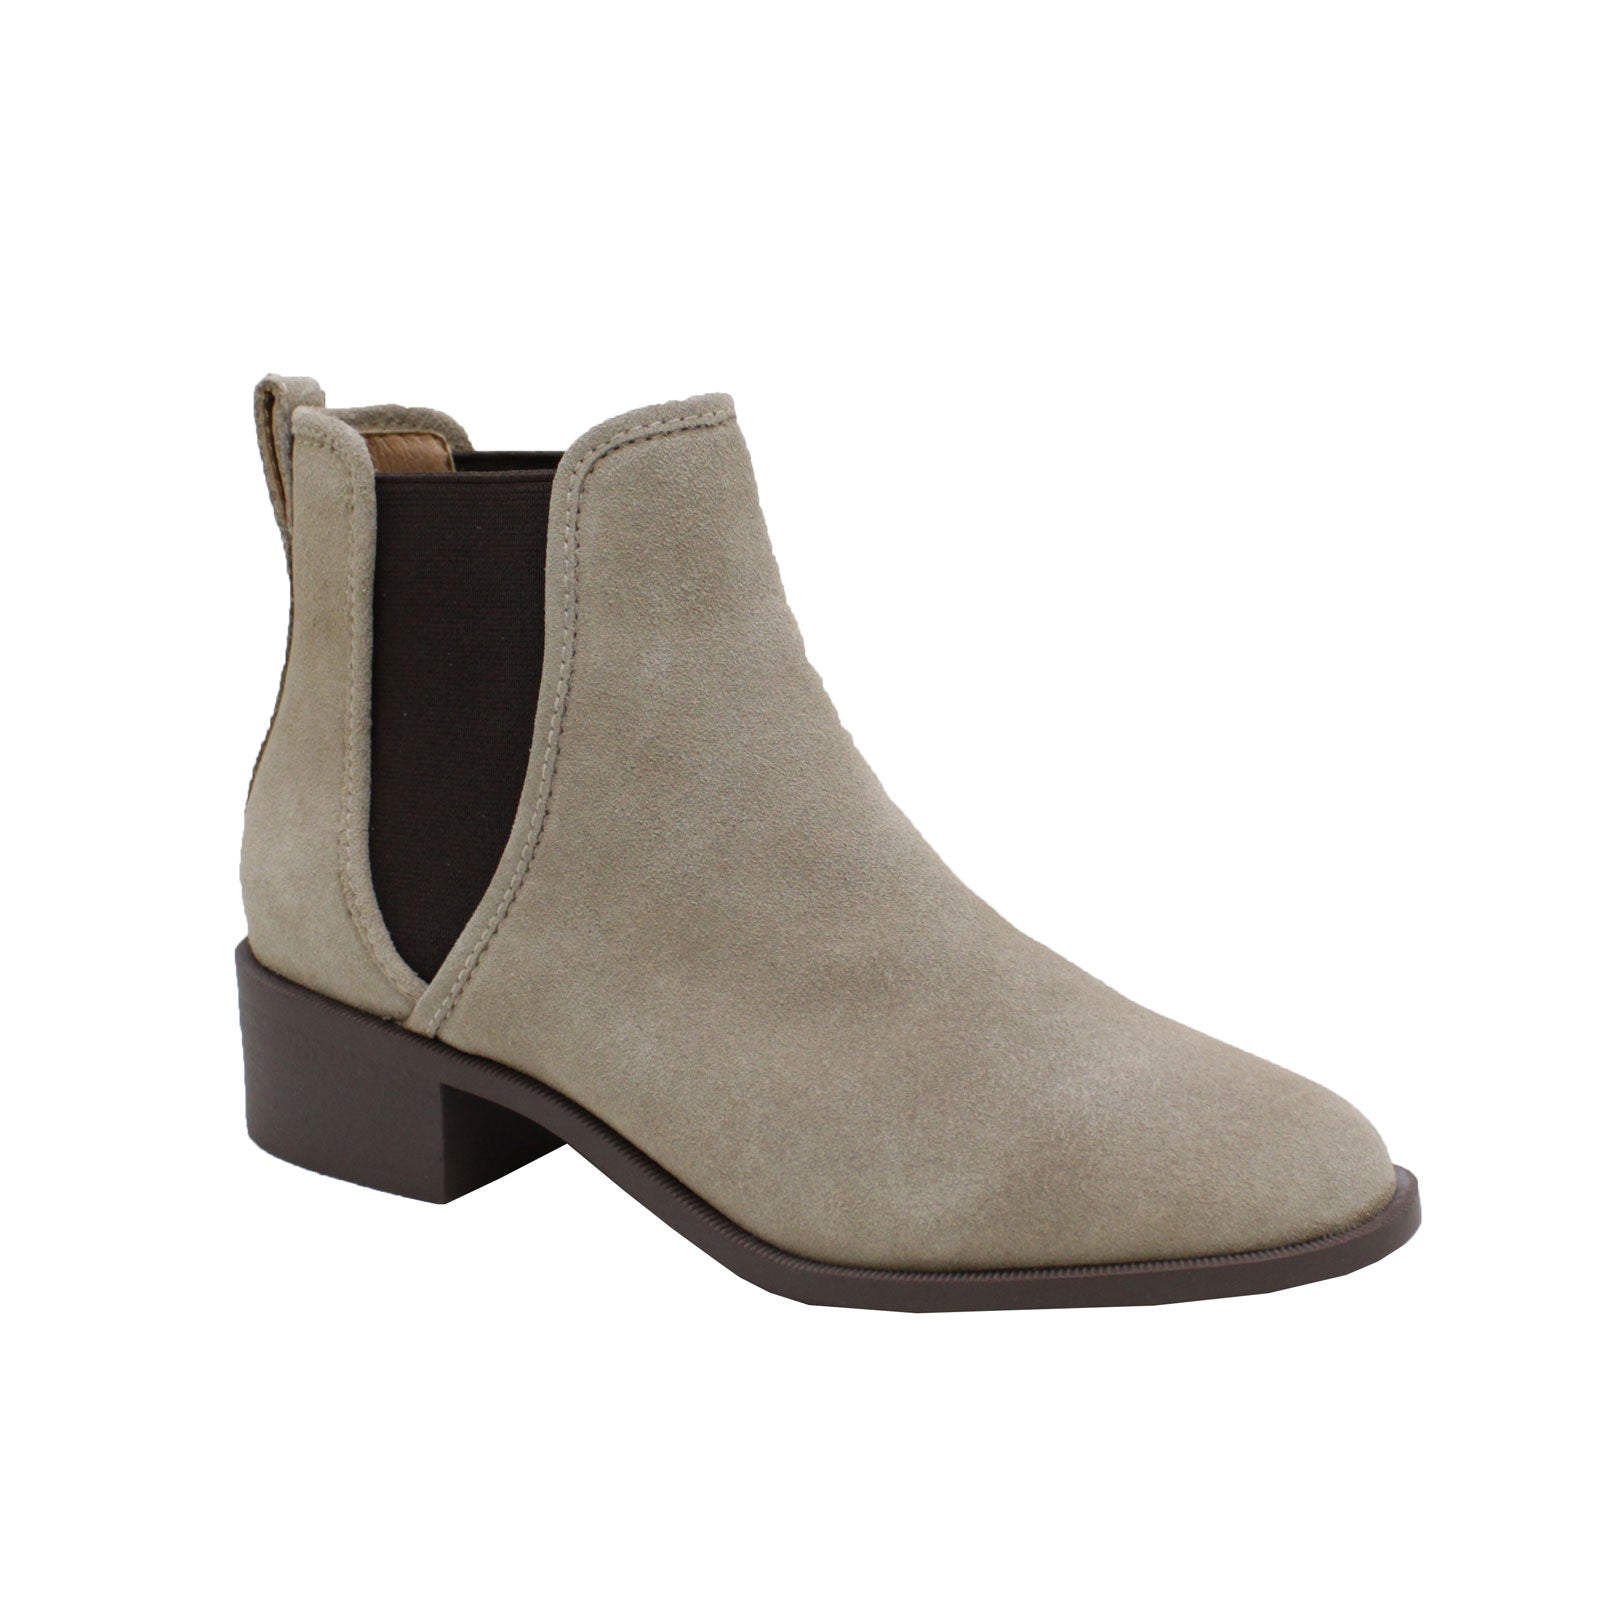 Steve Madden Dares Chelsea- Taupe Suede